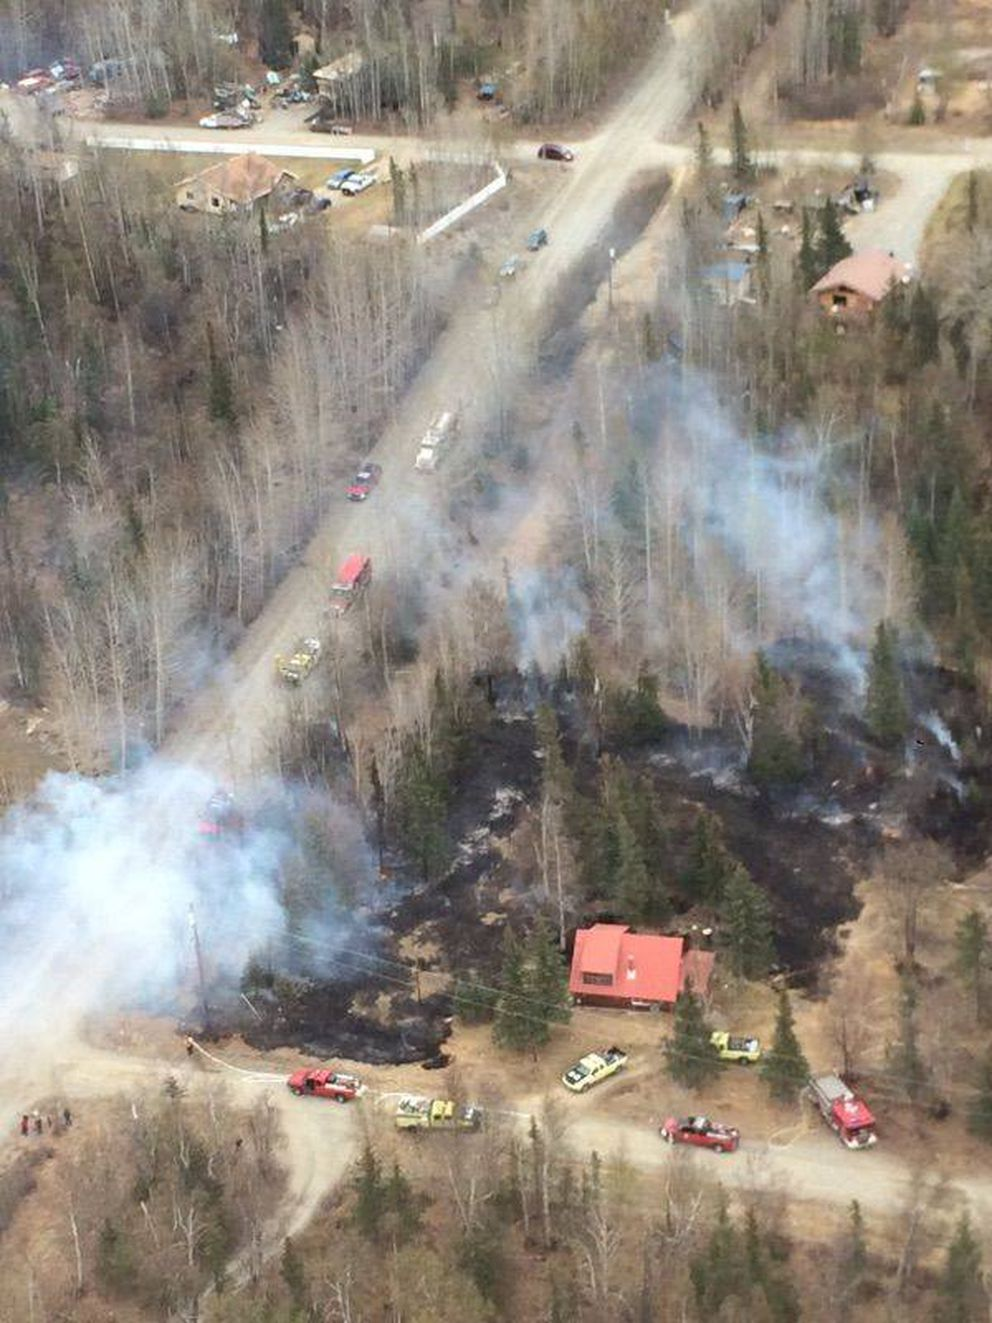 Fire officials say a 1-acre wildfire on Teresa Drive outside Palmer, on Saturday, May 6,2017, began when a charcoal grill overturned in high winds. (From Alaska Division of Forestry)